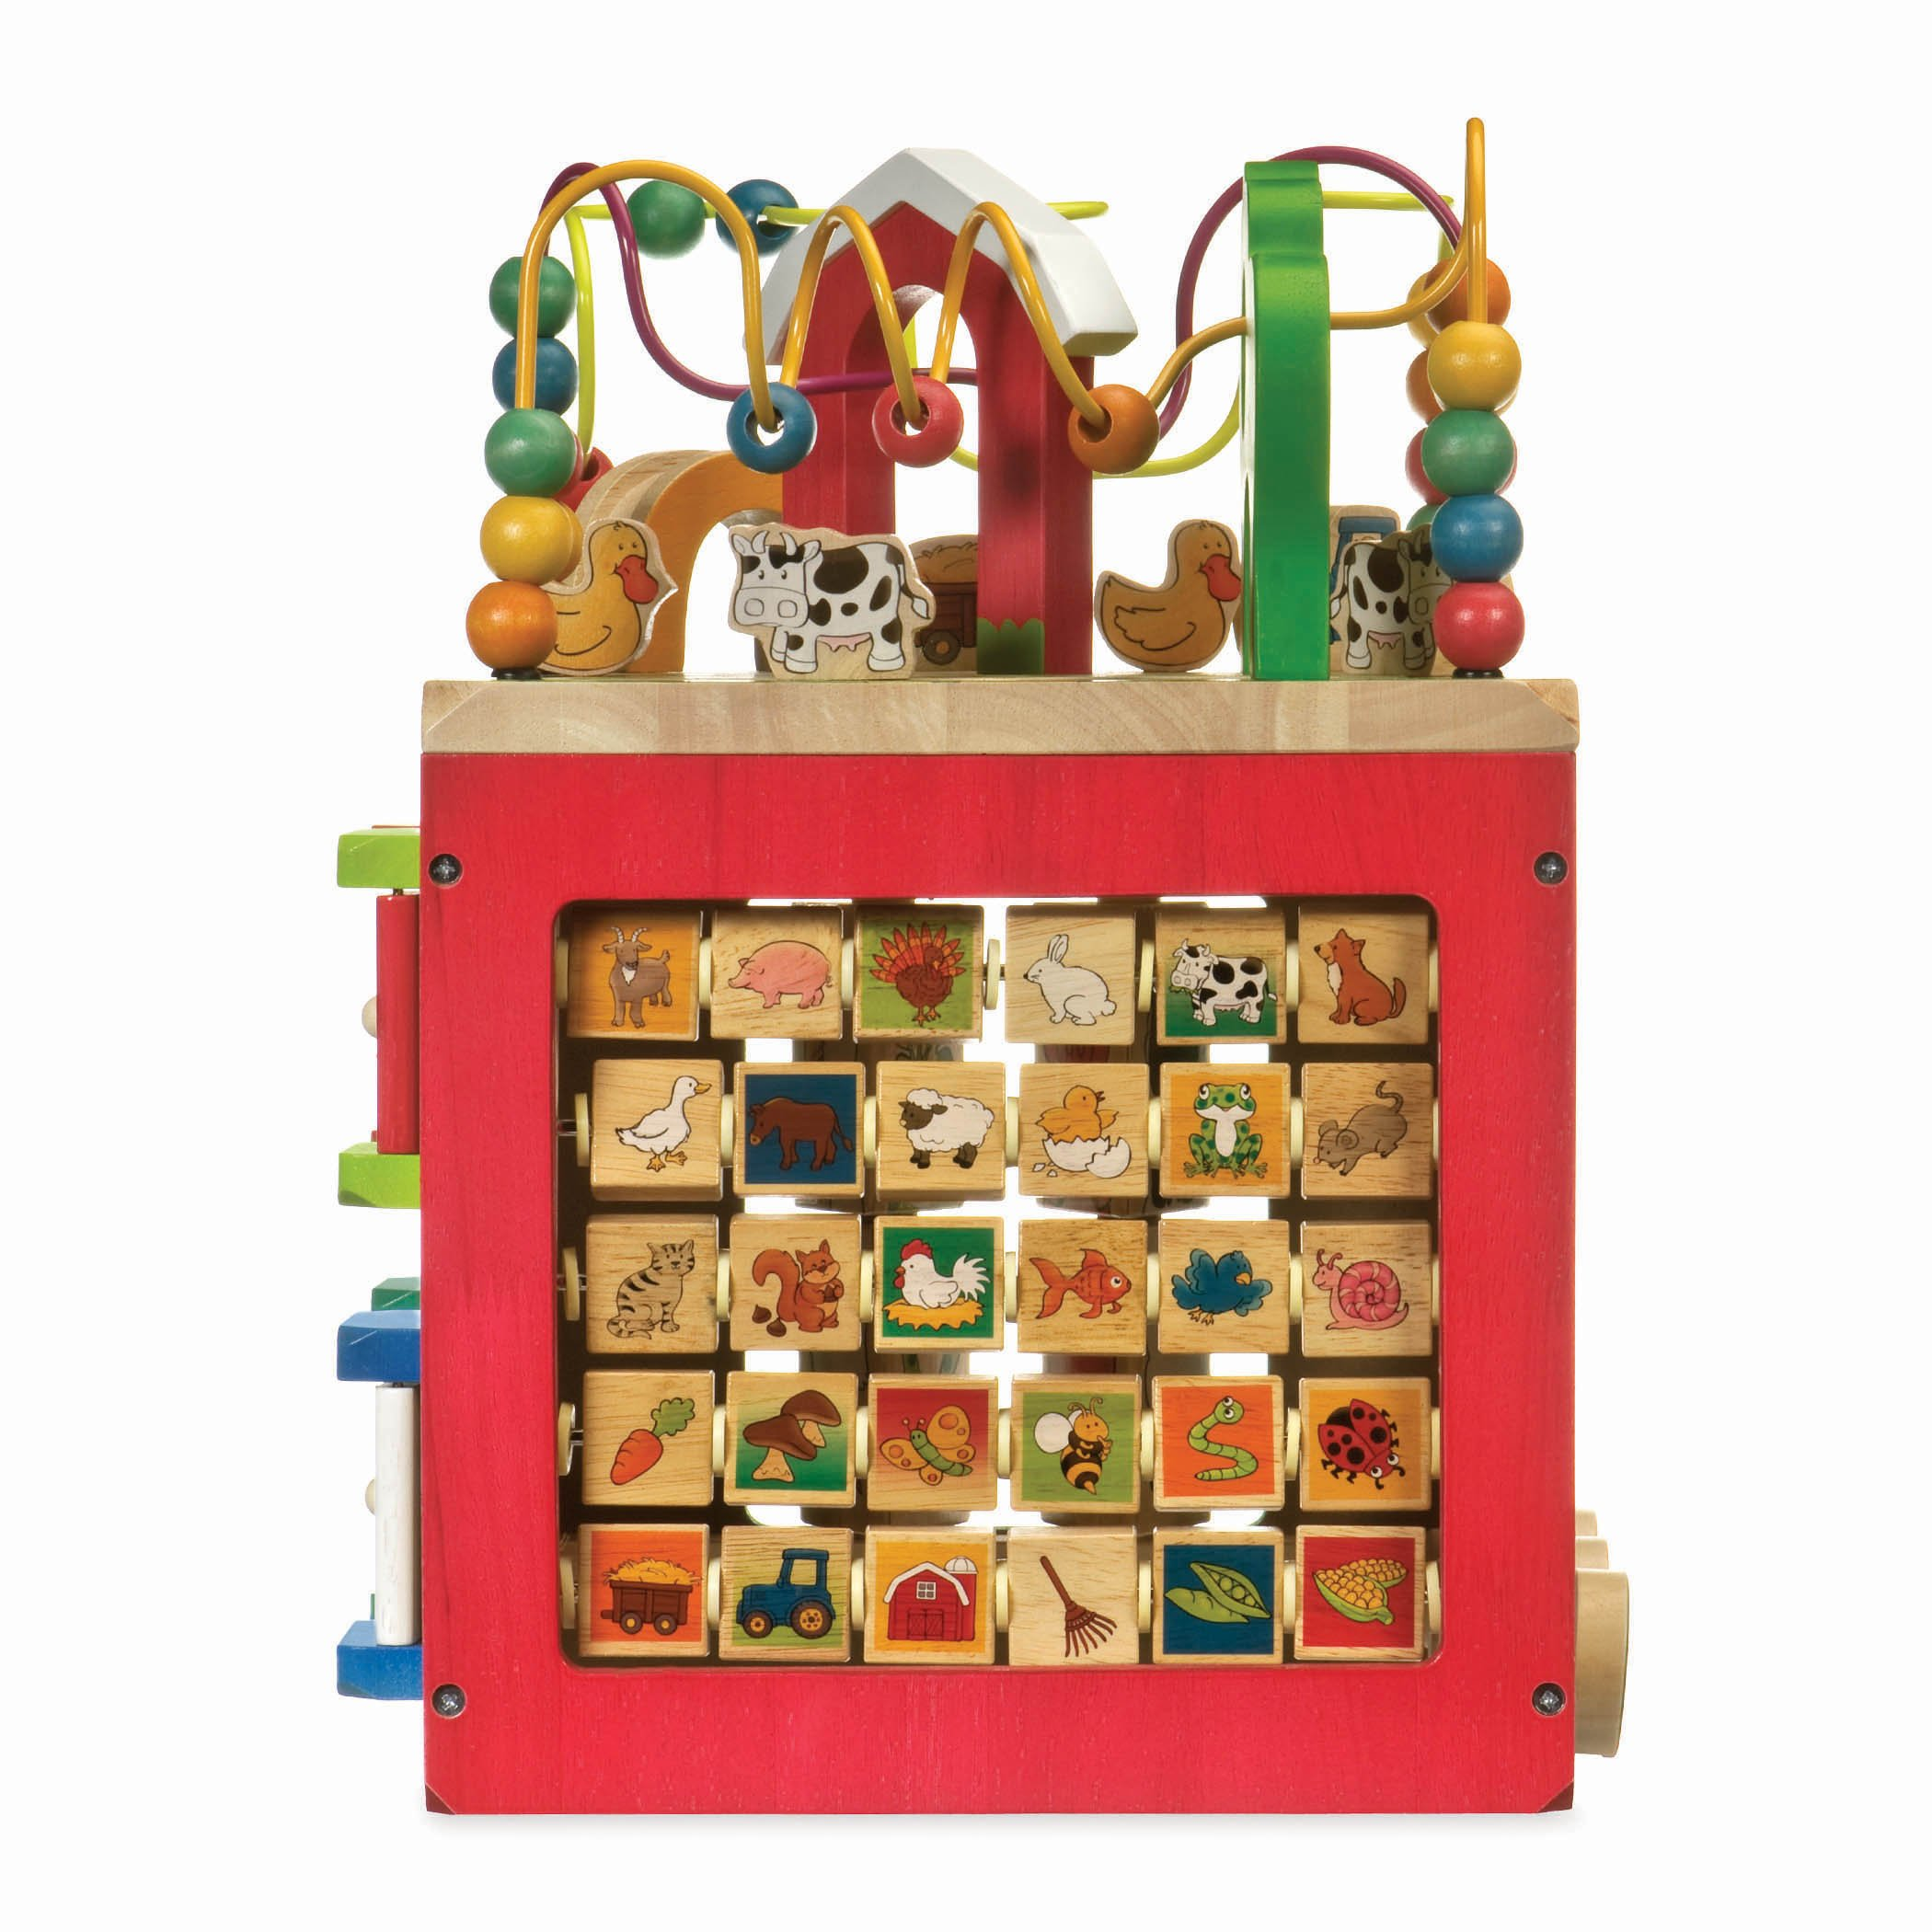 Battat - Wooden Activity Cube - Discover Farm Animals Activity Center for Kids 1 year + by Battat (Image #5)